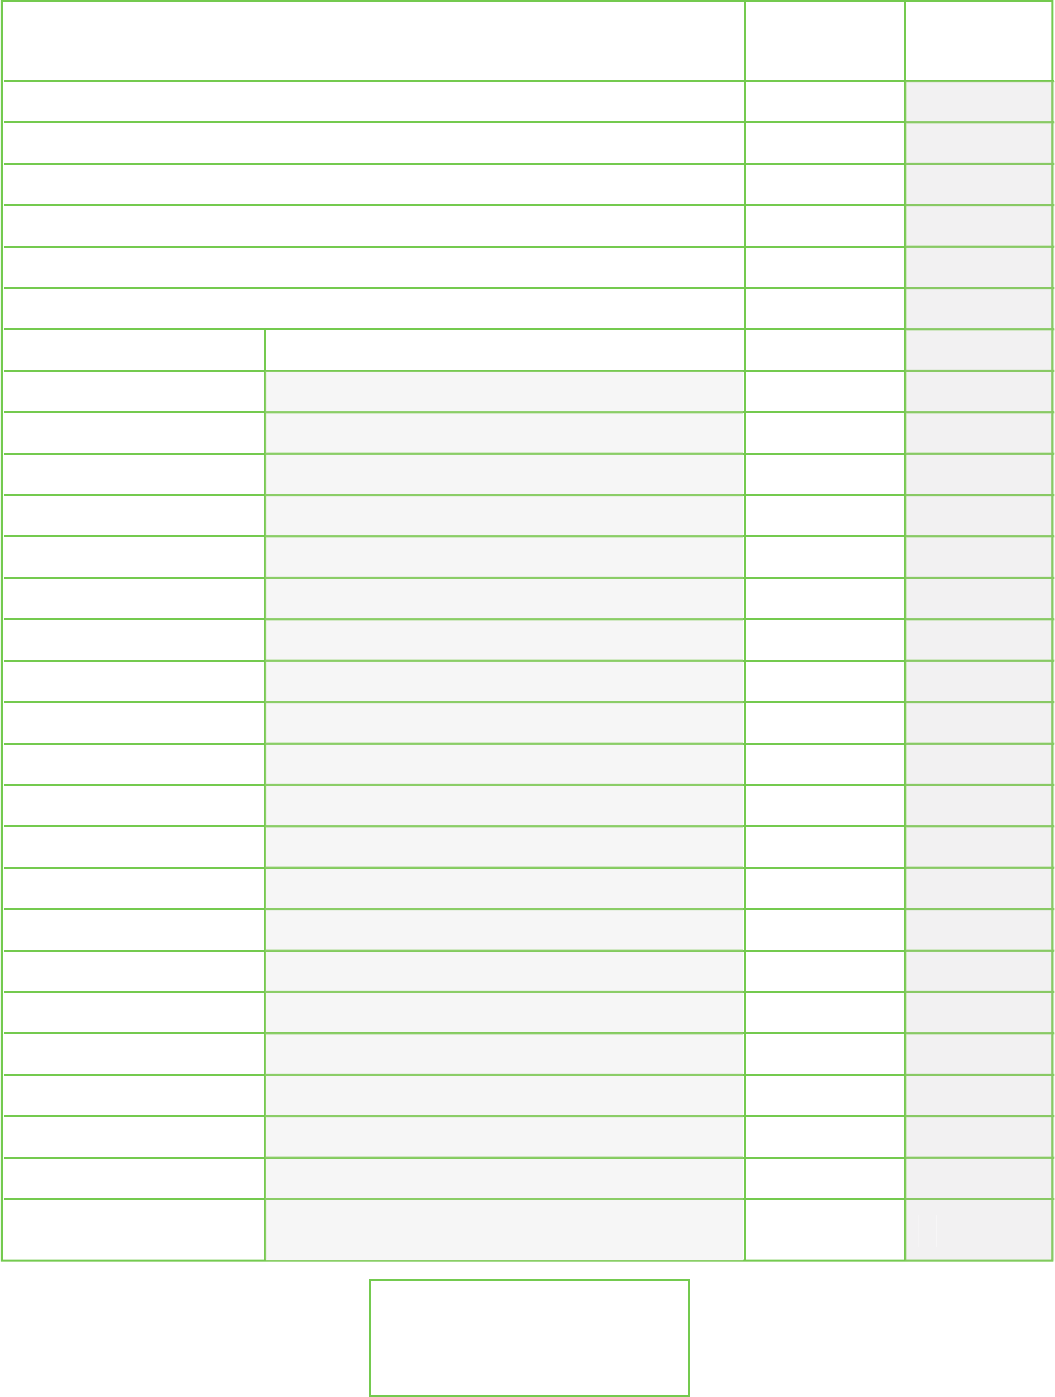 download vacation budget planner for free tidytemplates